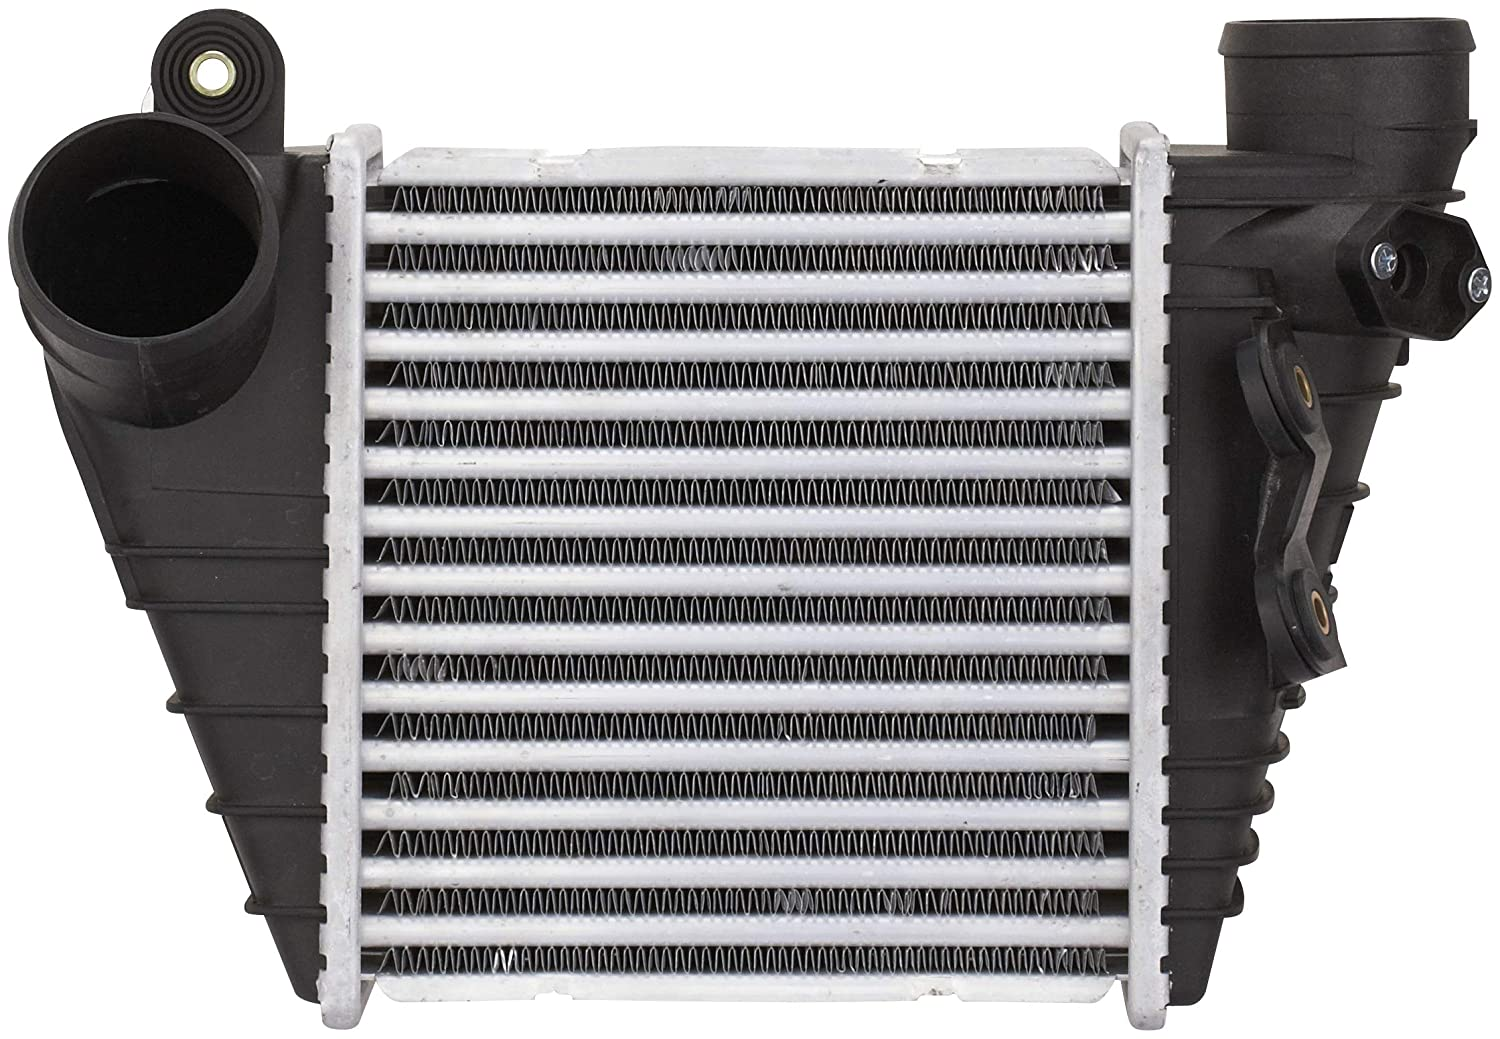 7 Rows Blue Autobahn88 Universal Oil Cooler Tank Core 11.8x3.74x2 Includes 2 x 10ANxM22 Adapter 300x95x50mm